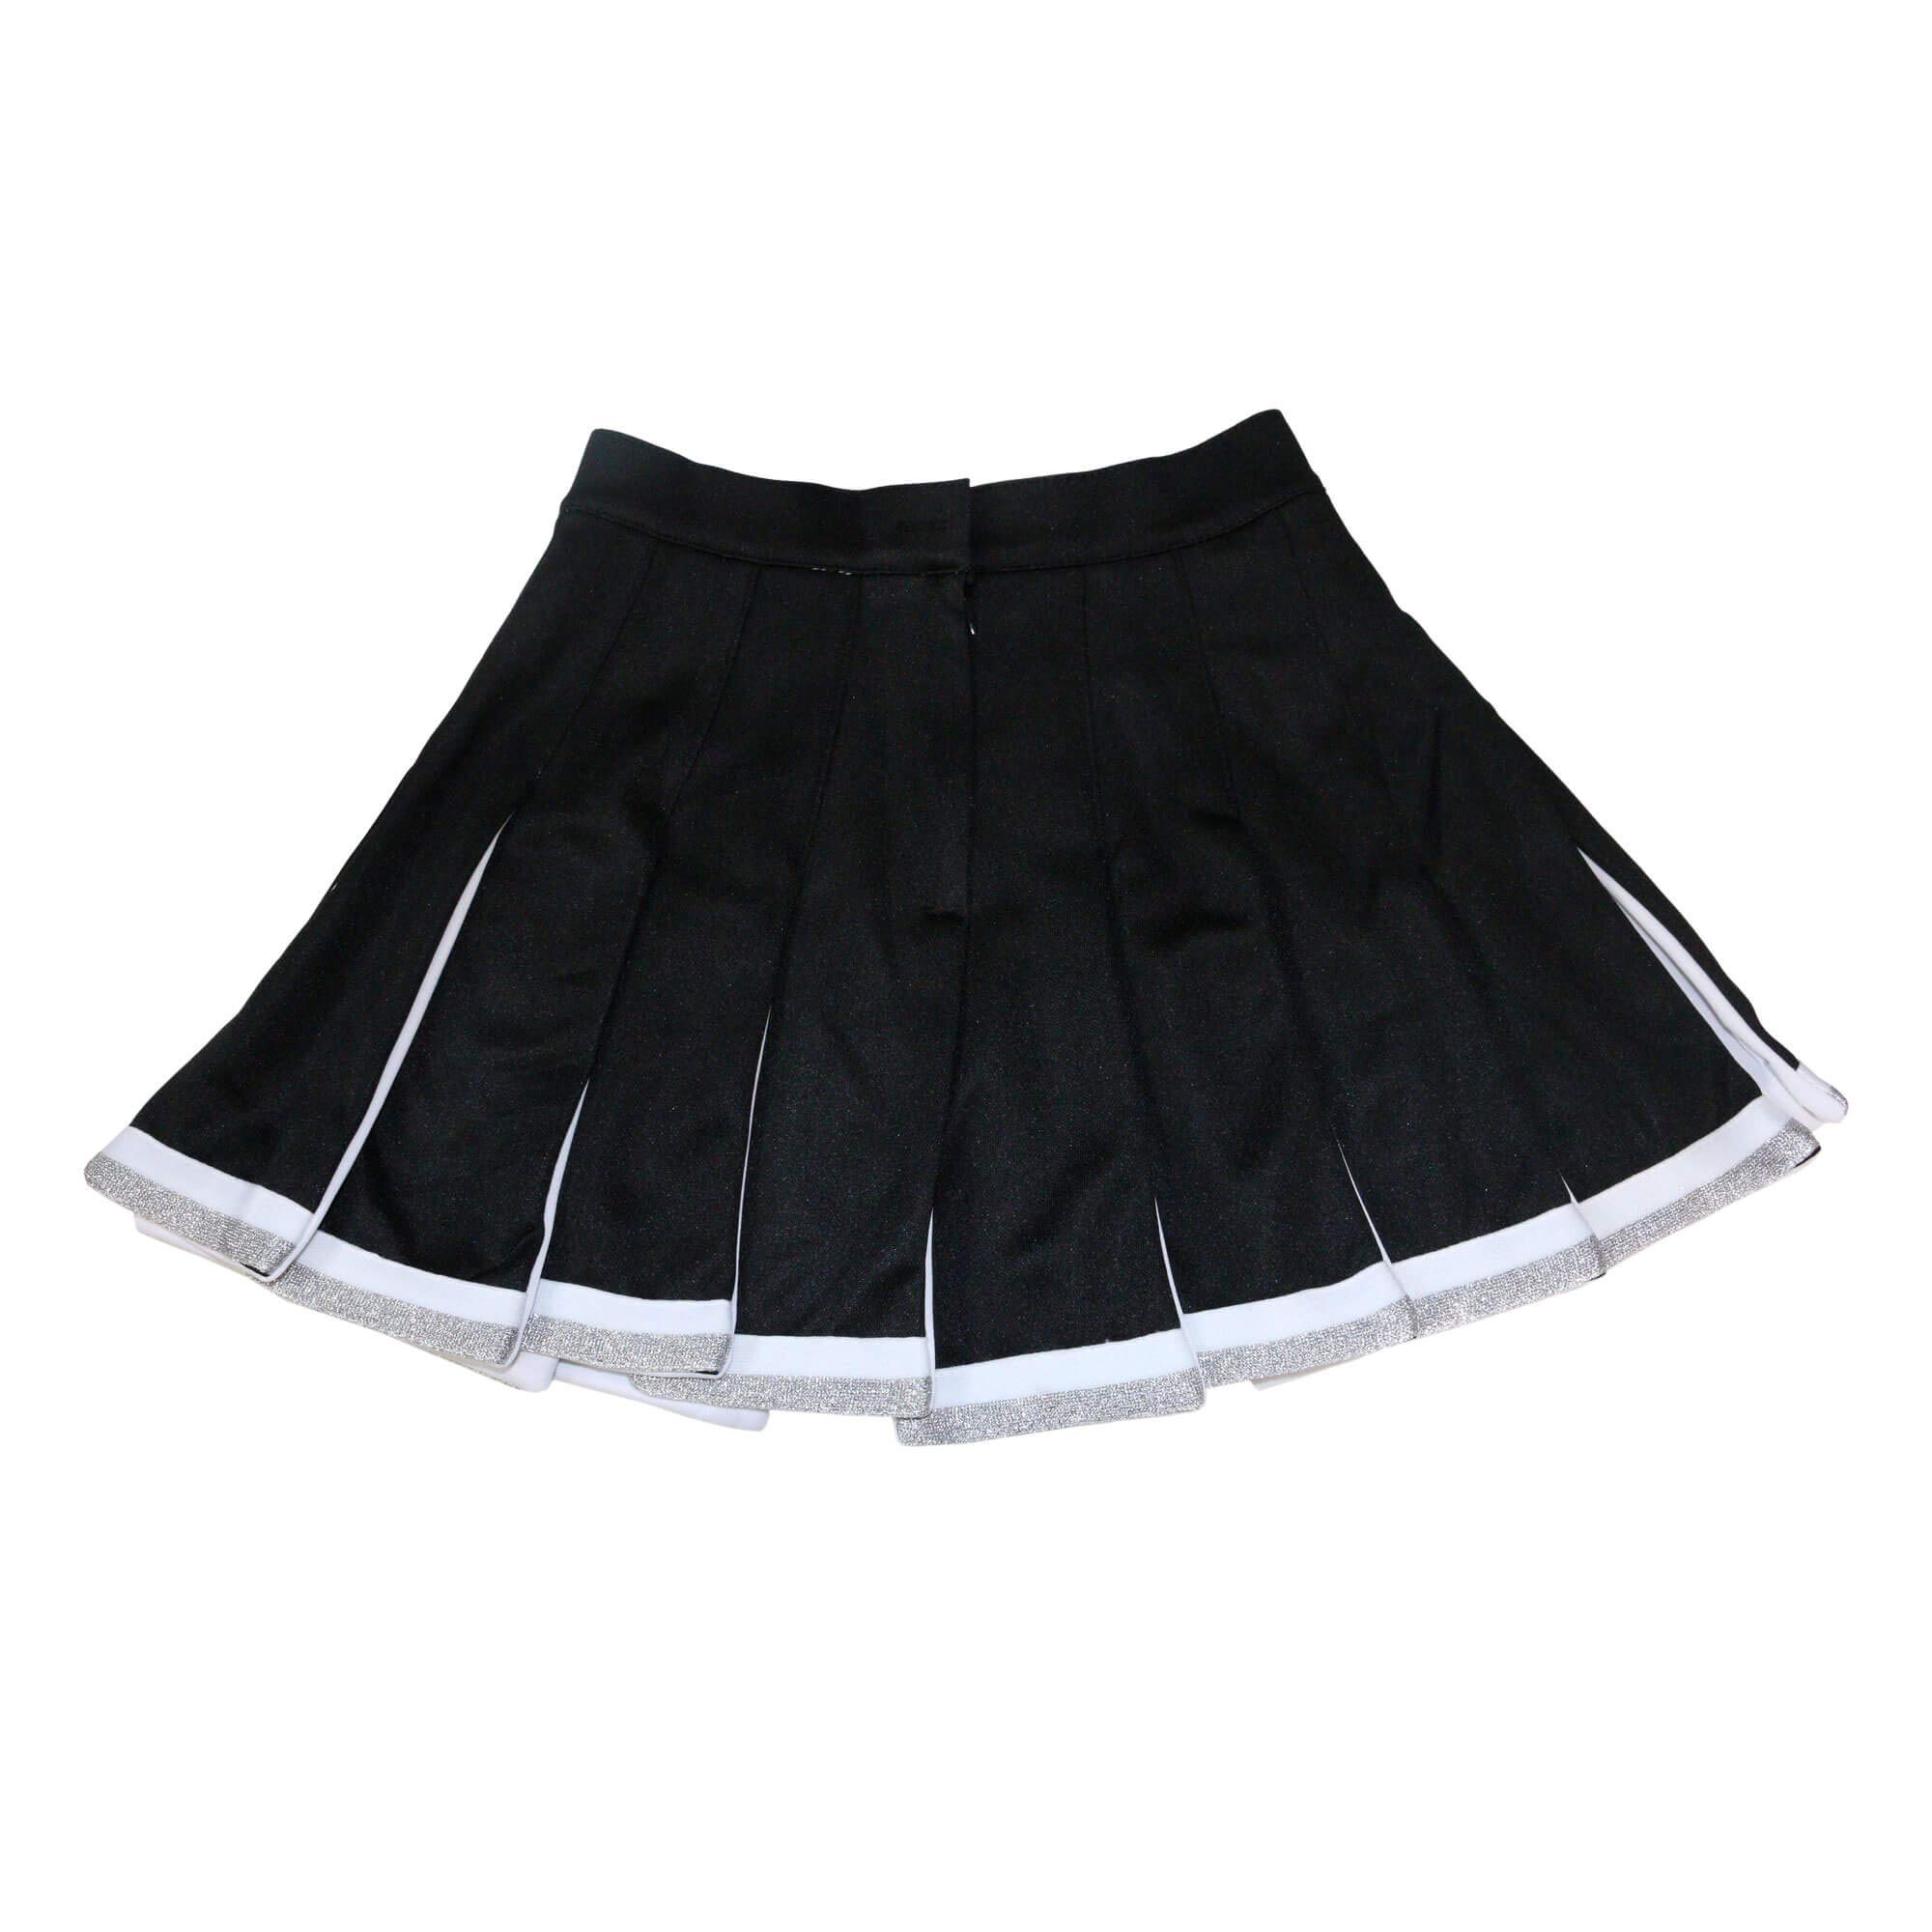 Danzcue Child Cheerleading Pleated Skirt, Black-White, Medium by Danzcue